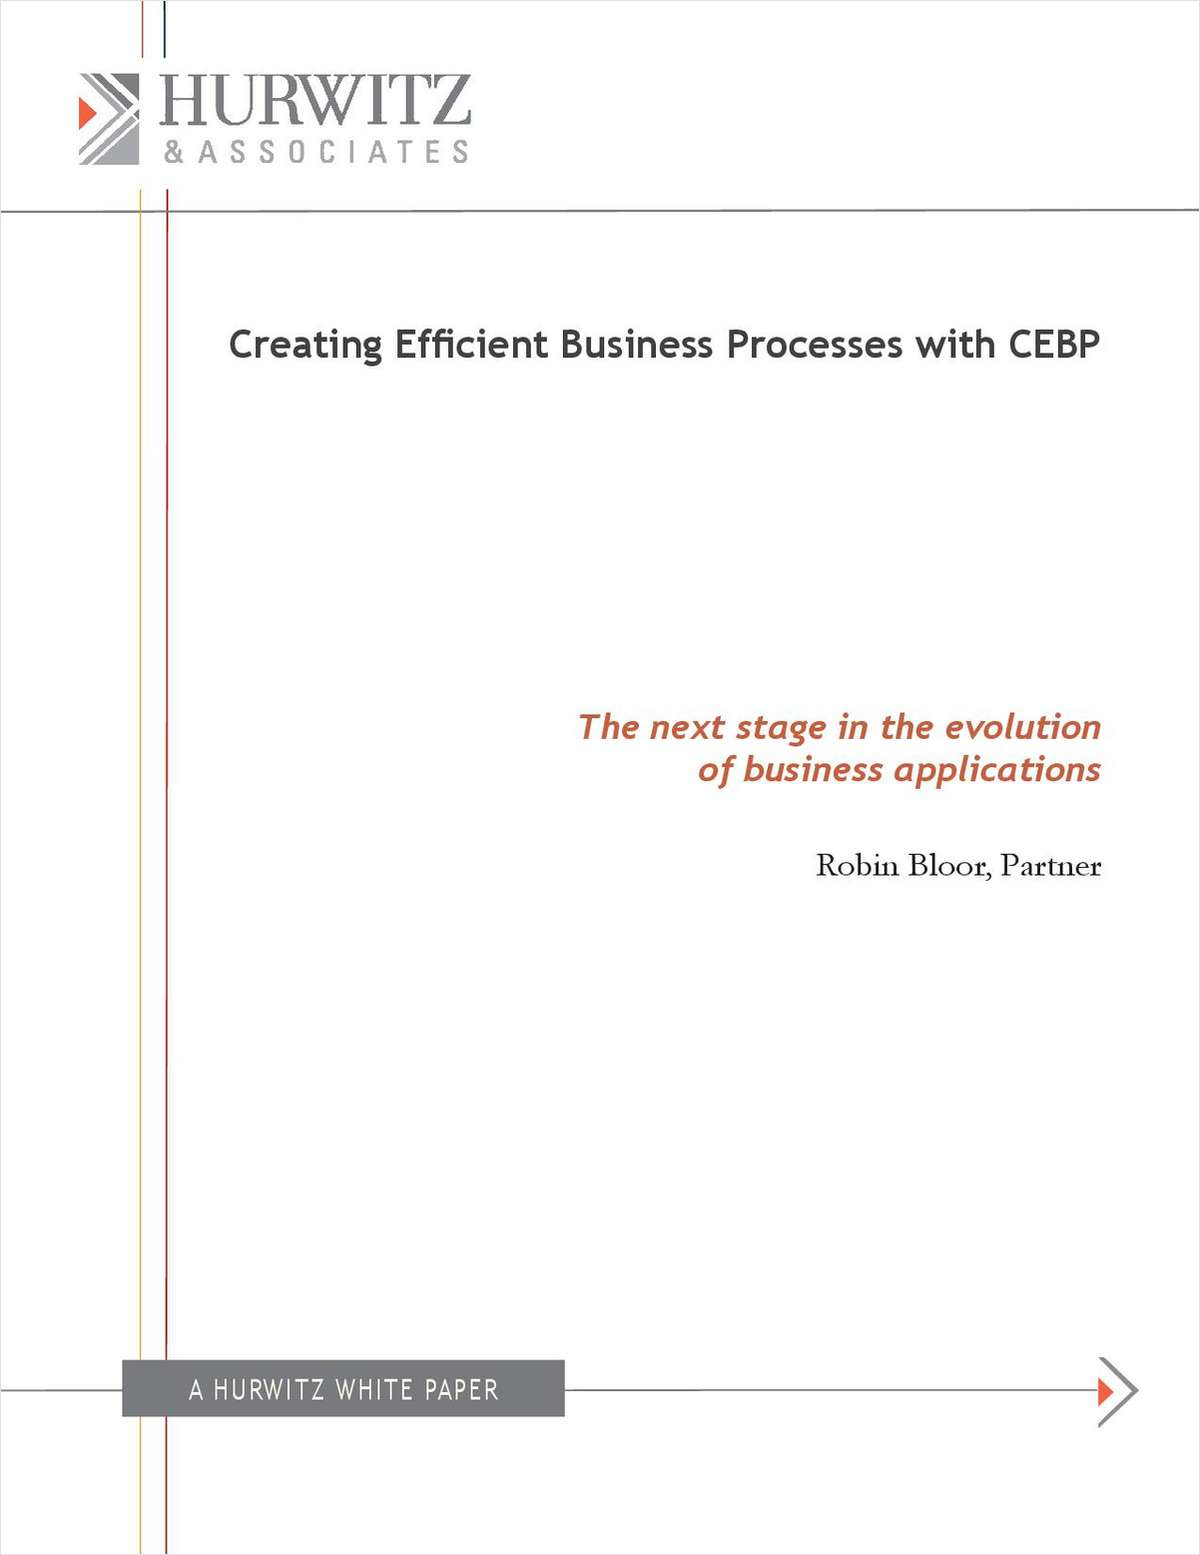 Creating Efficient Business Processes with CEBP - The next stage in the evolution of business applications